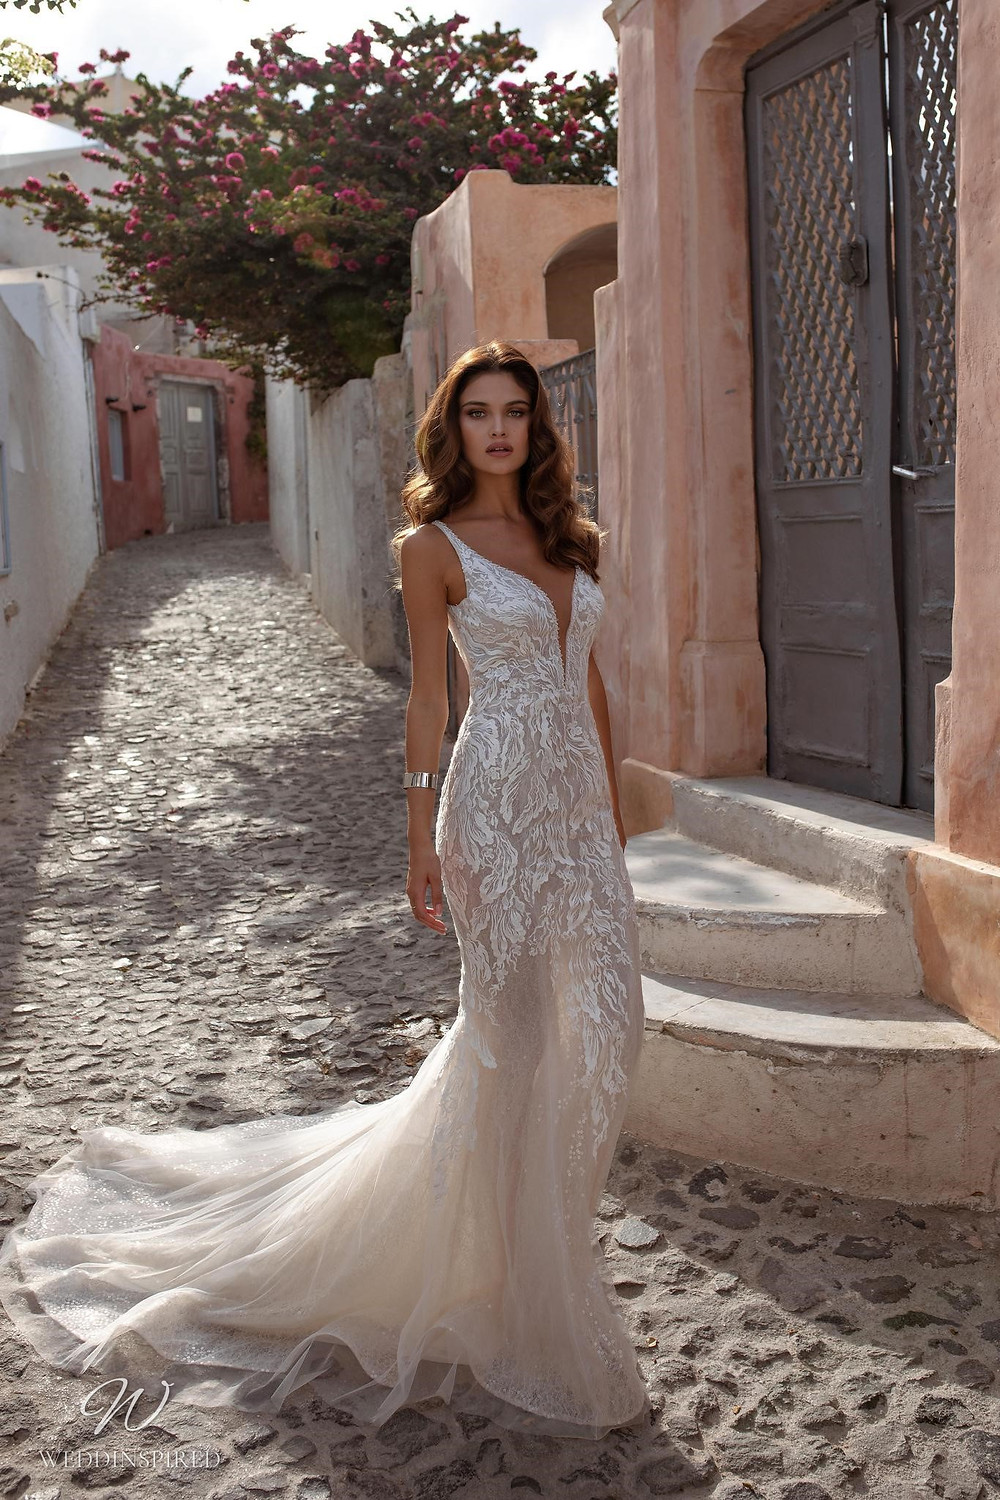 A Ricca Sposa lace and tulle mermaid wedding dress with straps and a v neckline